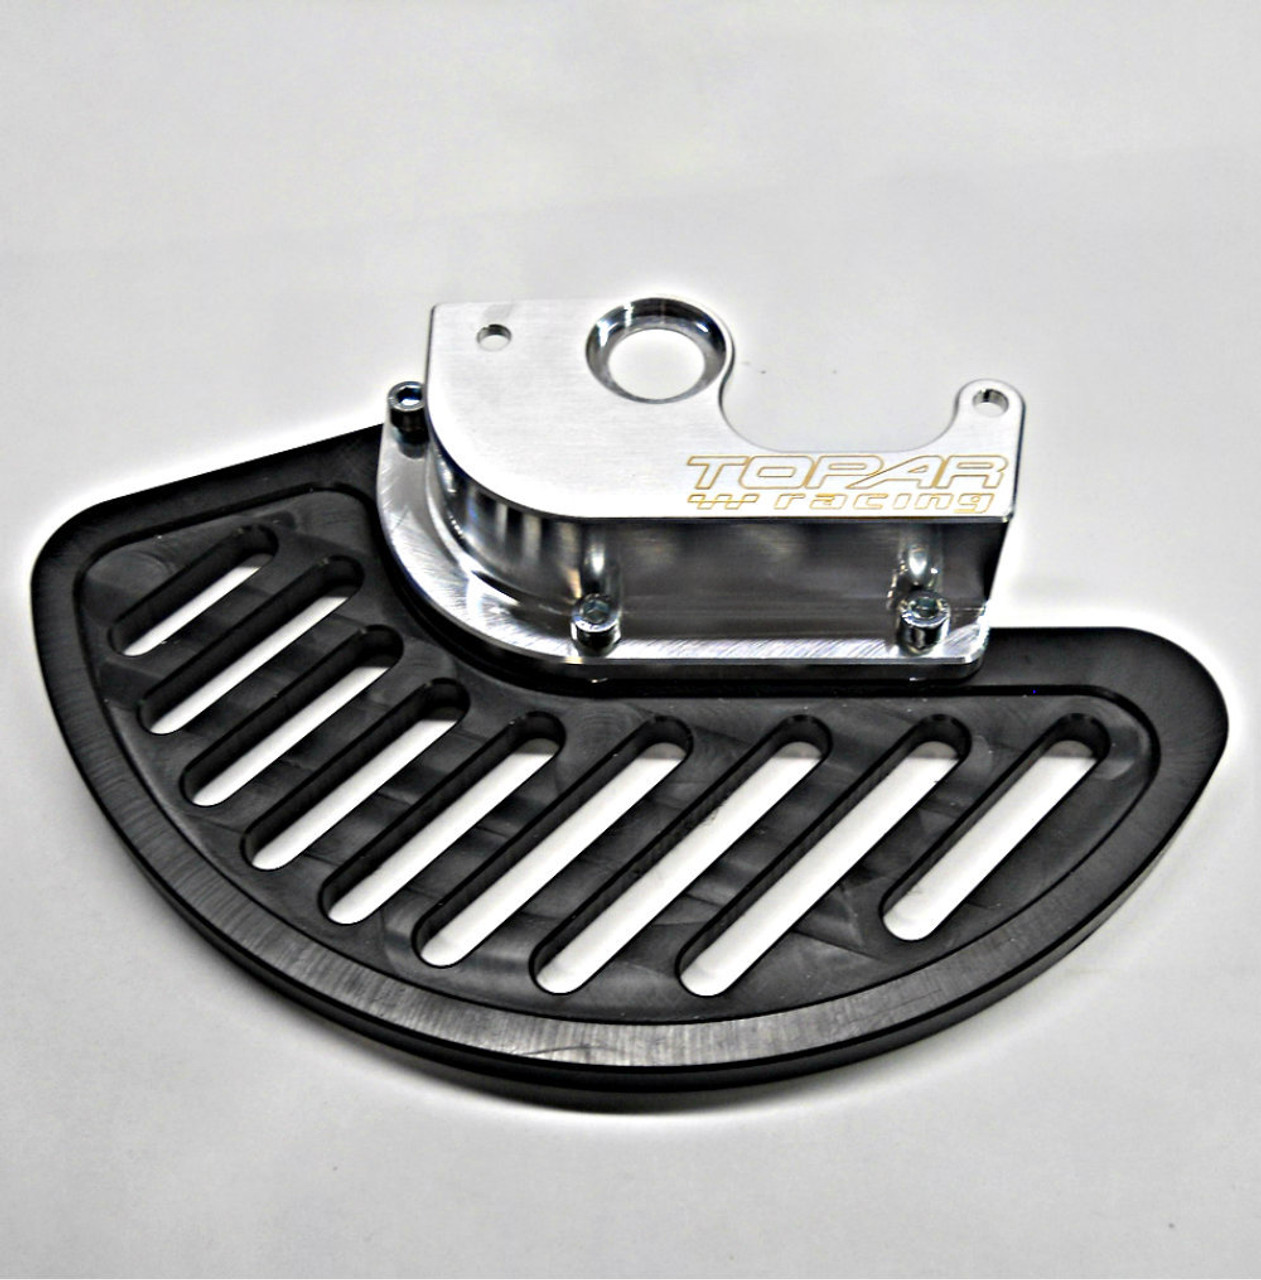 Topar Racing Front Brake Rotor Disc Guard for 2001-2006 SUZUKI RM125 and RM250 (SHOWN WITH UHMW PLASTIC FIN)